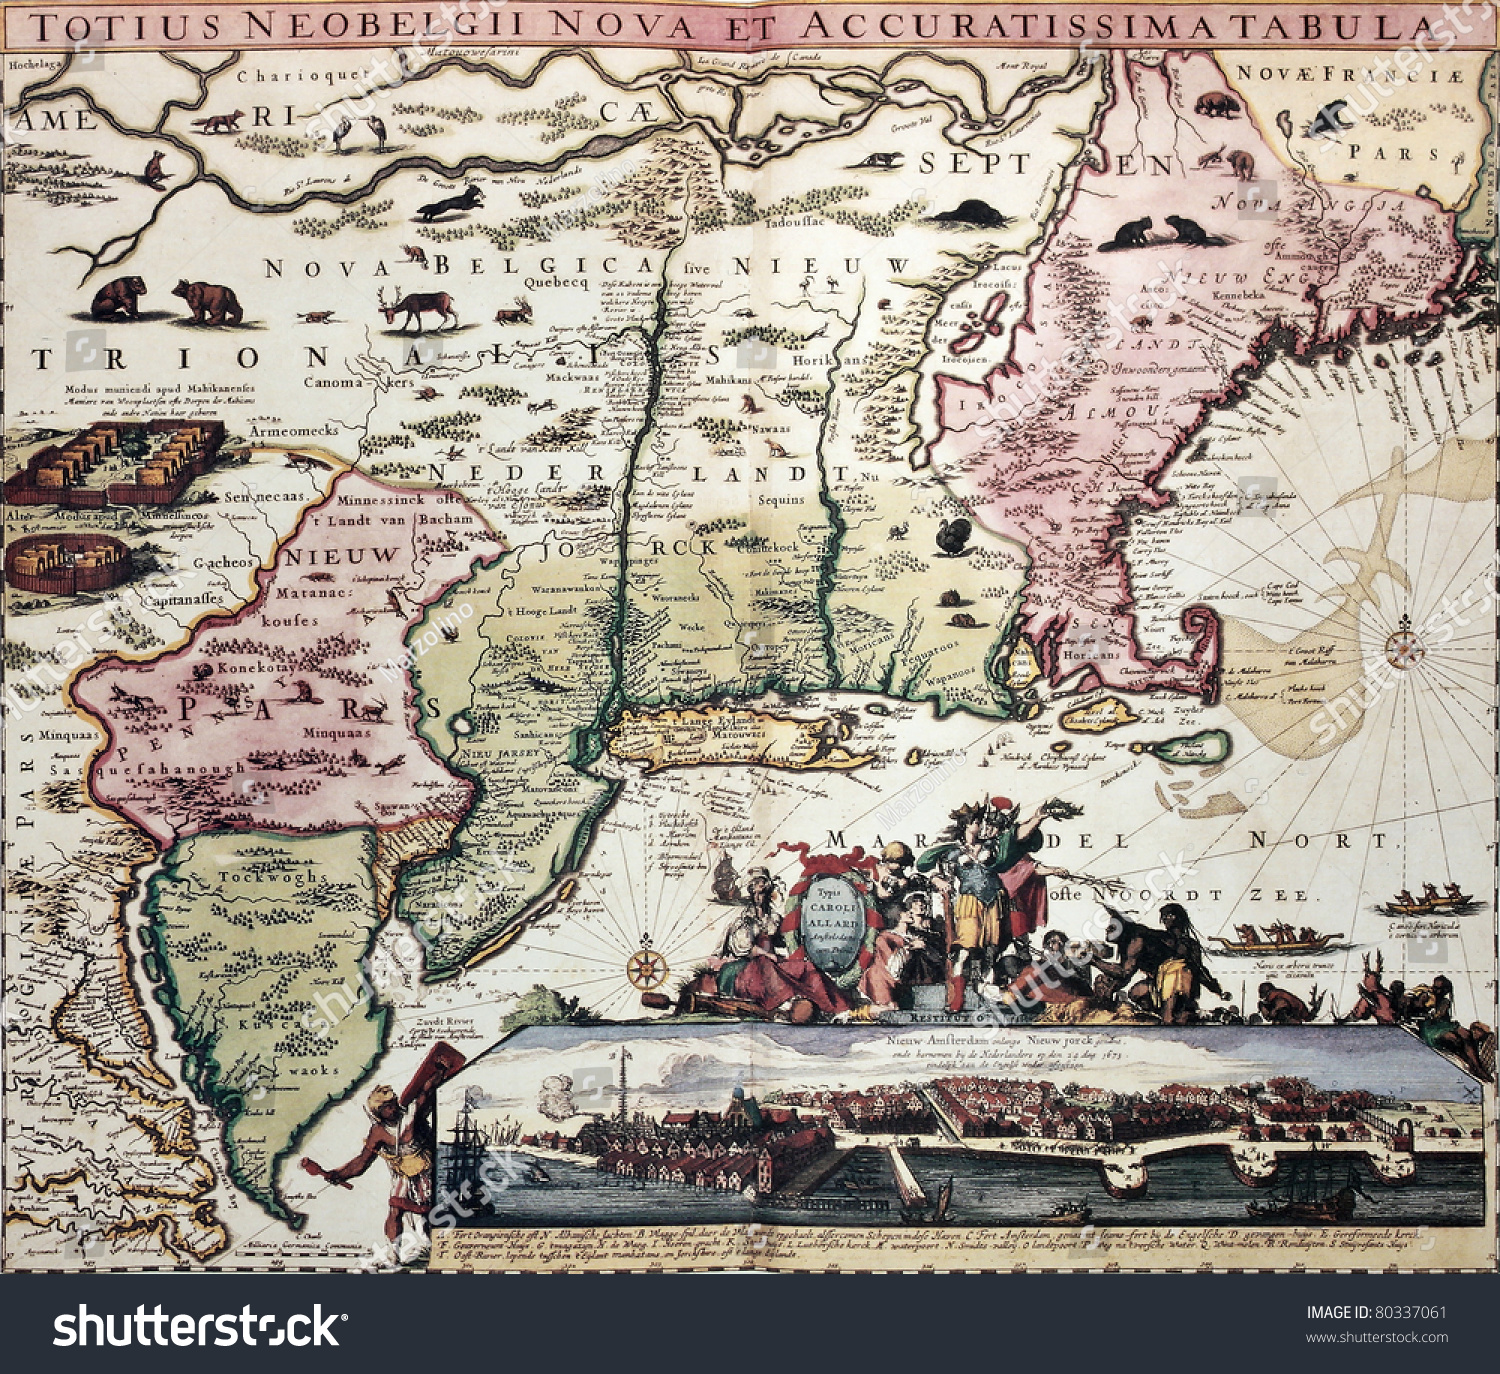 stock-photo-new-england-old-map-with-new-amsterdam-insert-view-created-by-carel-allard-published-in-amsterdam-80337061